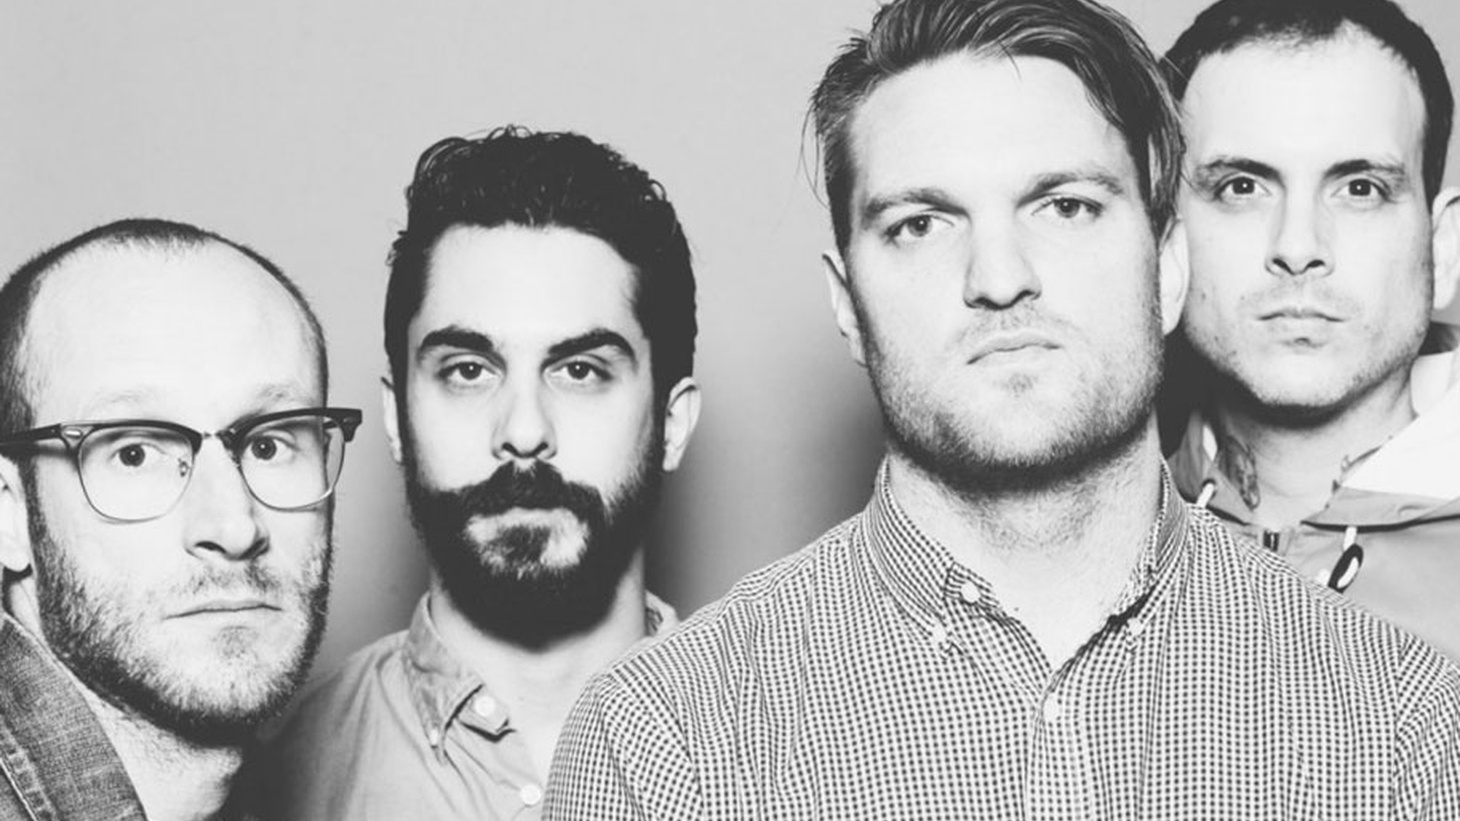 LA's own Cold War Kids joined us for a live session on the day they released Hold My Home in 2014.